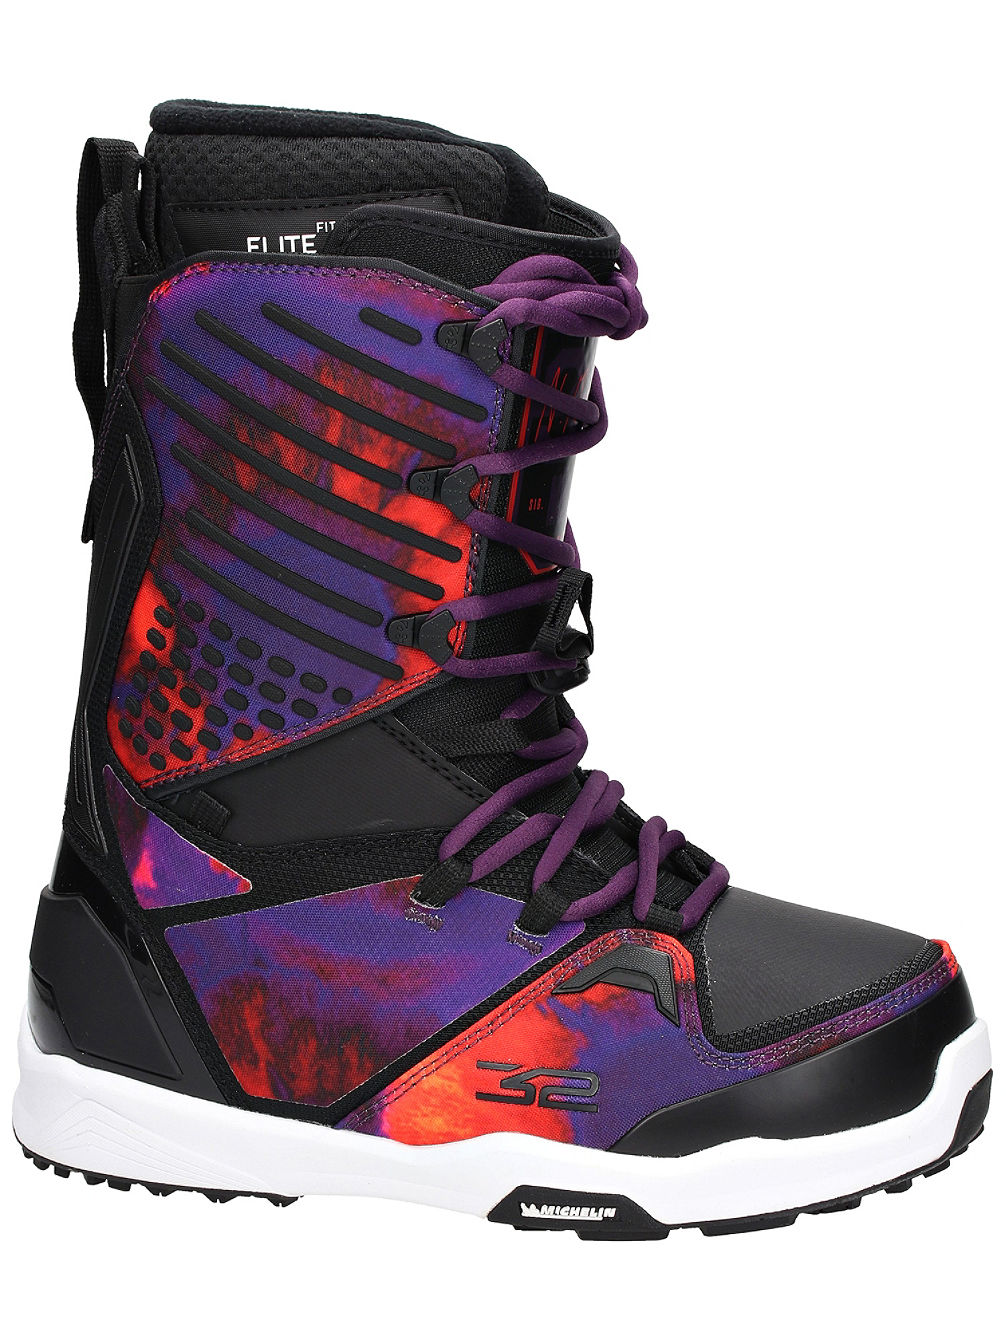 Mullair Snowboard Boots